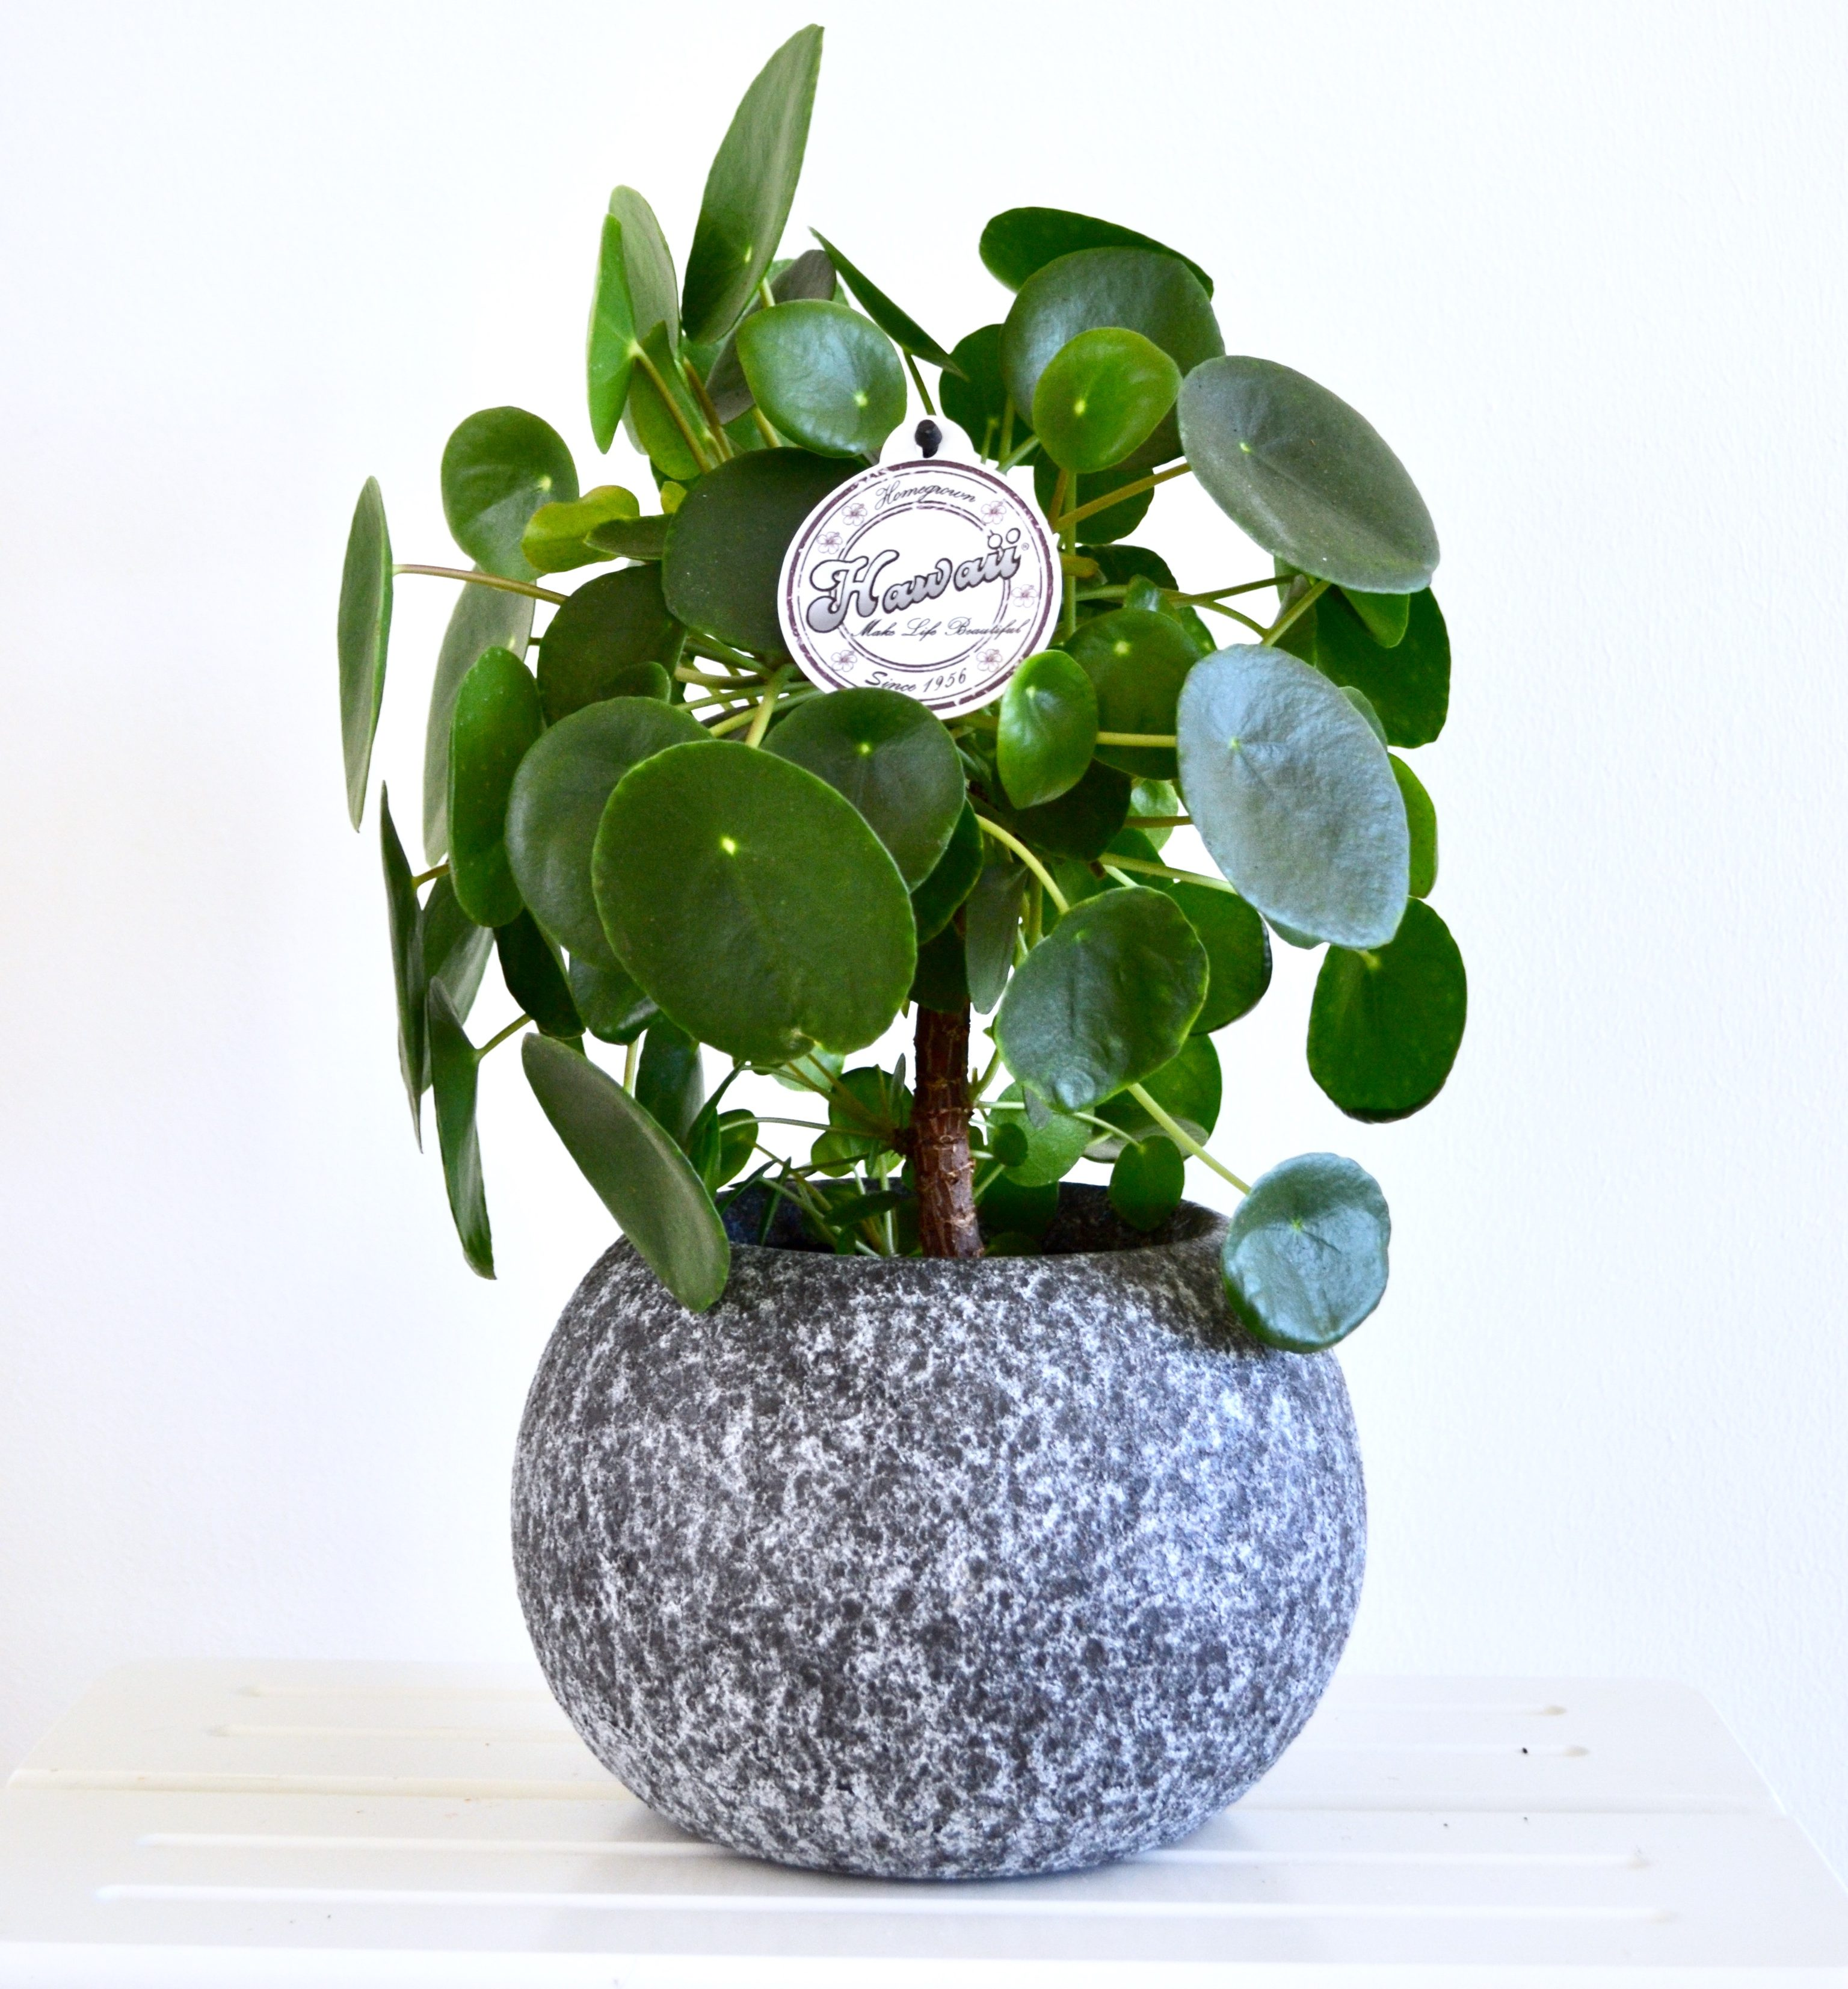 Pilea on stem